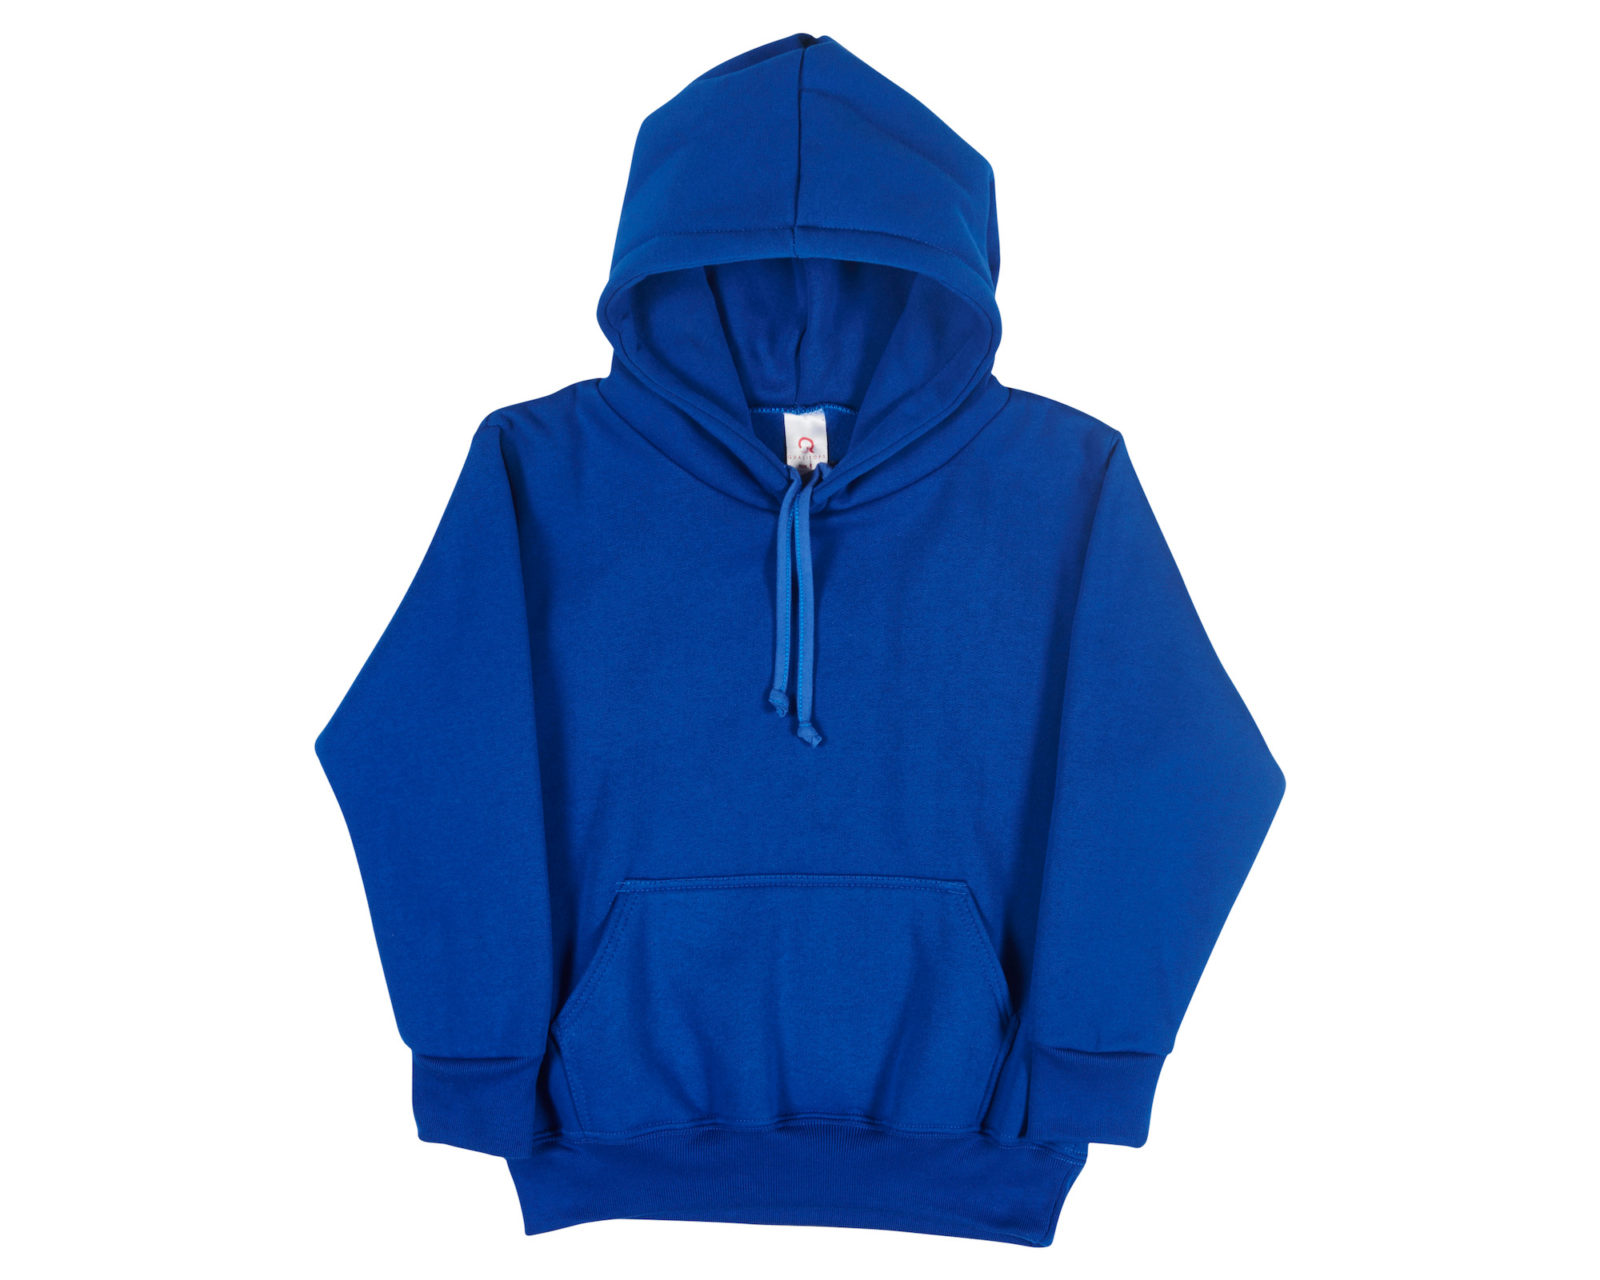 Kids hoodies online bulk wholesale custom orders for Custom shirts and hoodies cheap